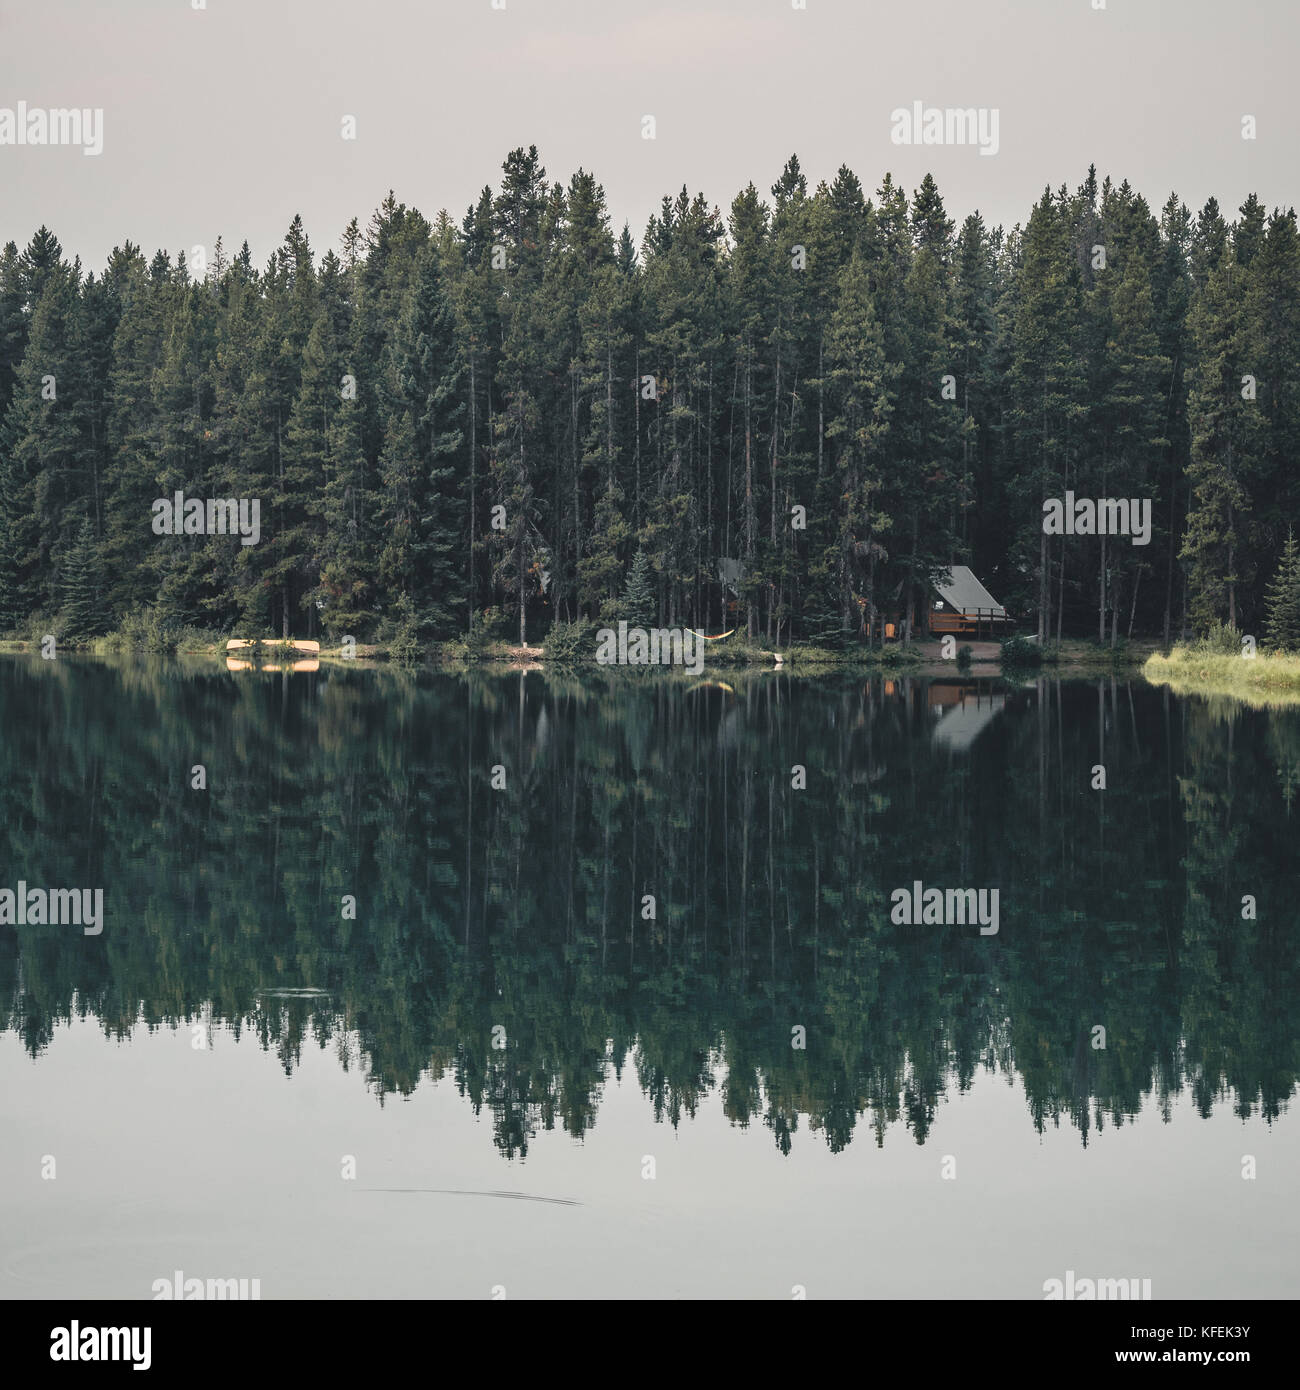 Cabin reflection with forest view - Stock Image